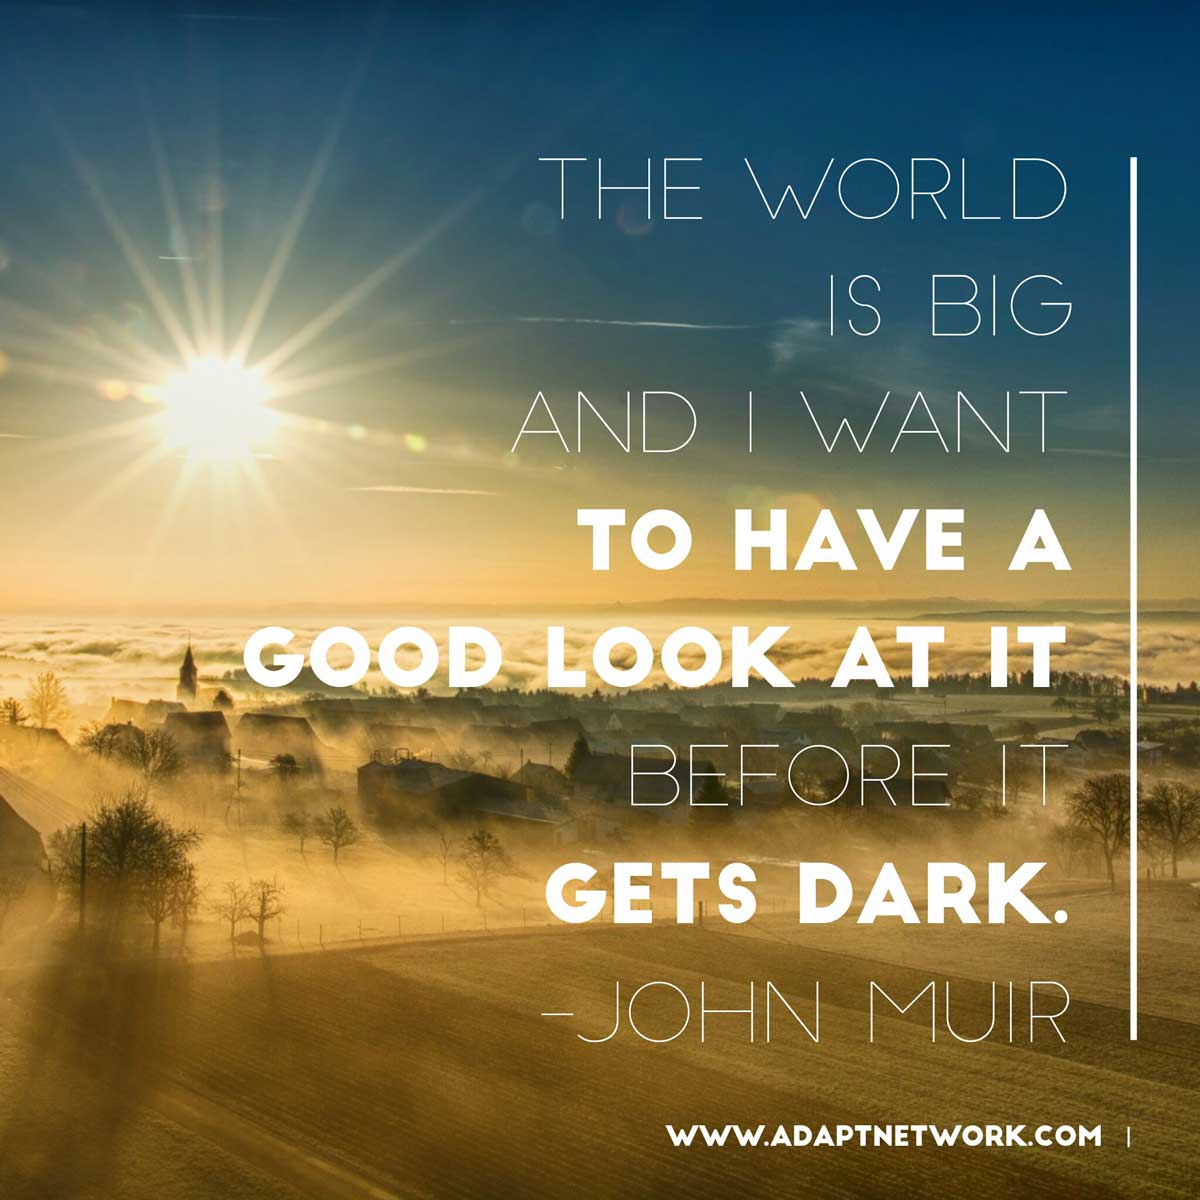 """Images Of Nature With Quotes For Facebook: """"The World Is Big And I Want To Have A Good Look At It"""